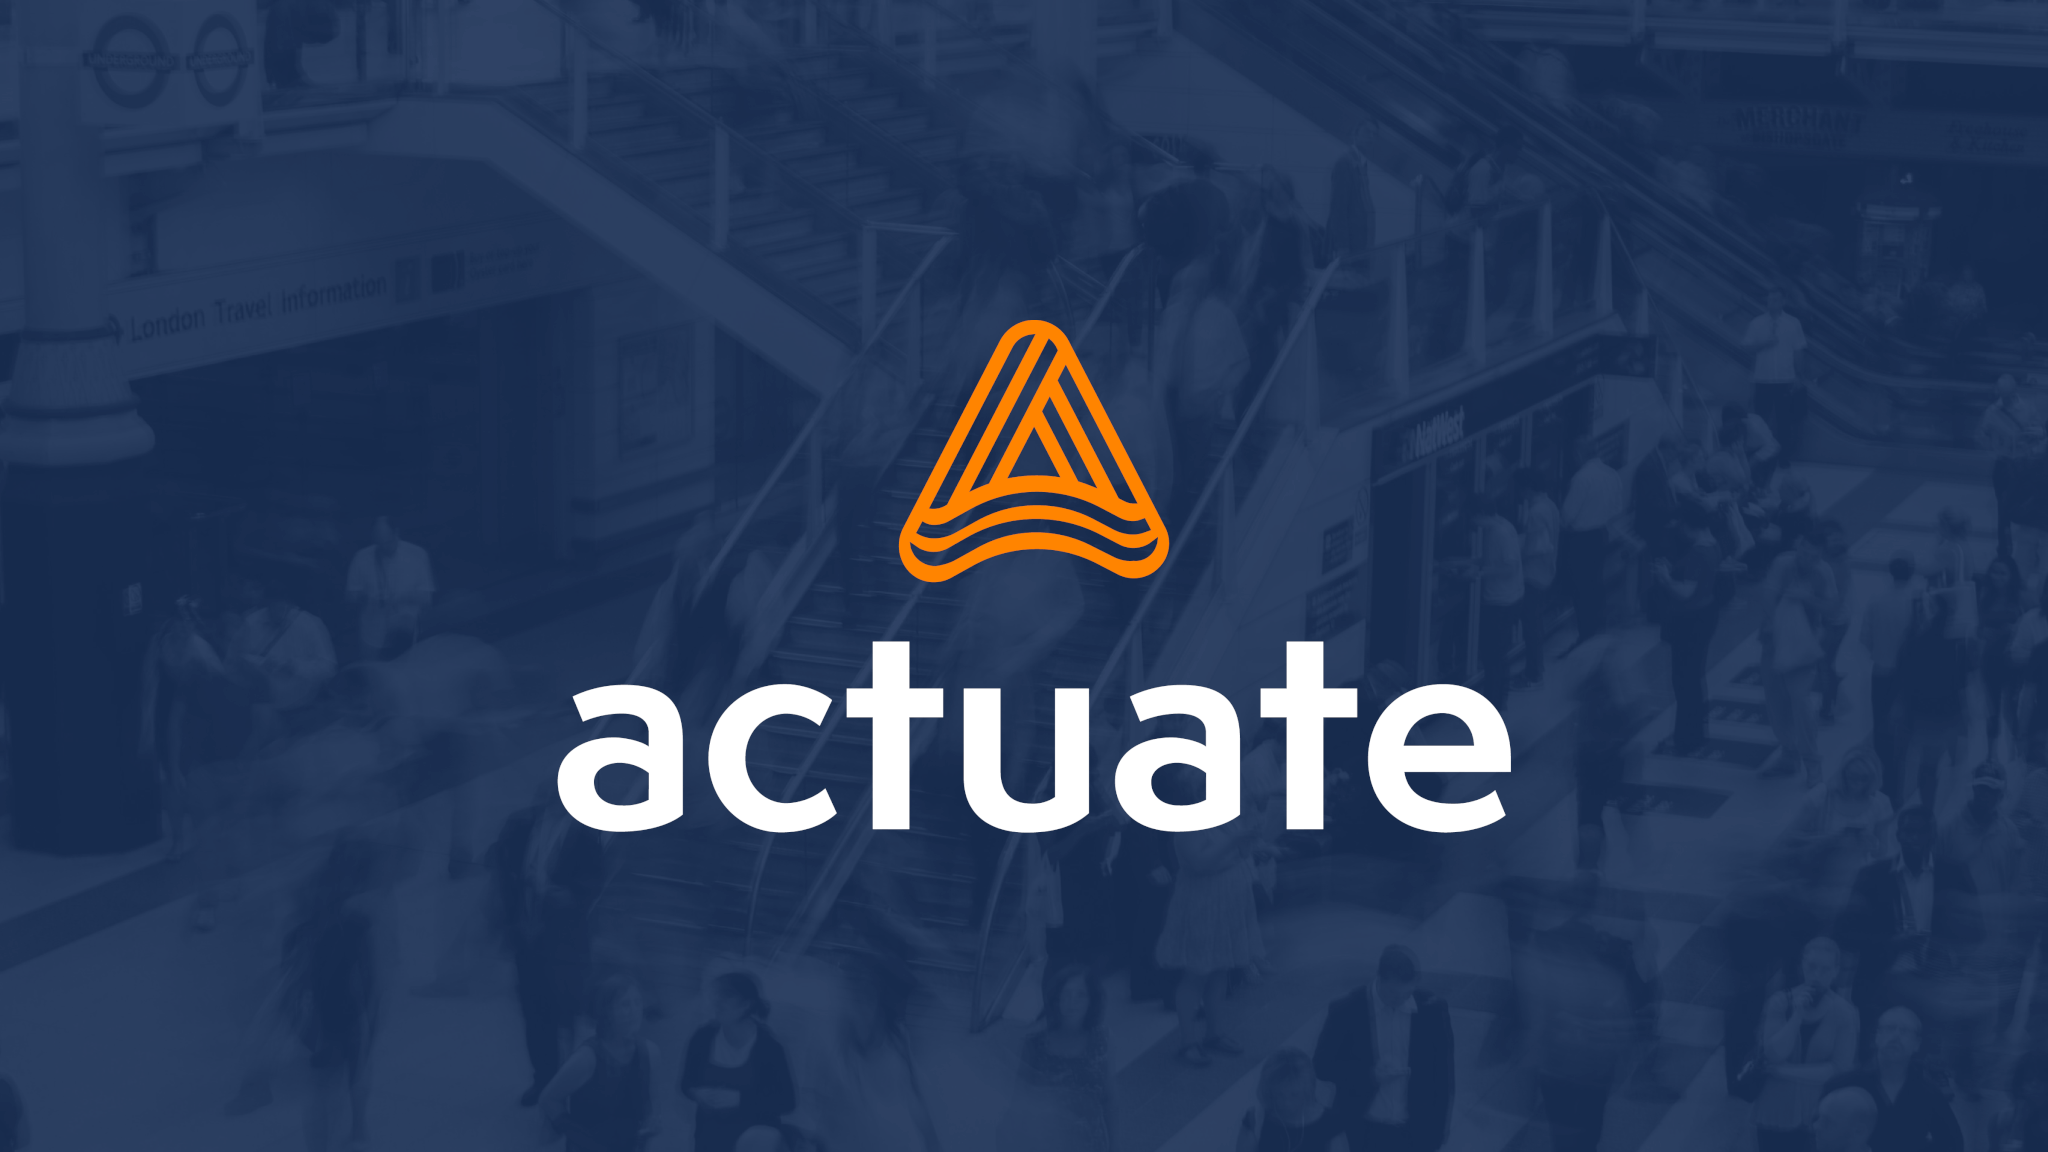 Actuate Logo for Twitter